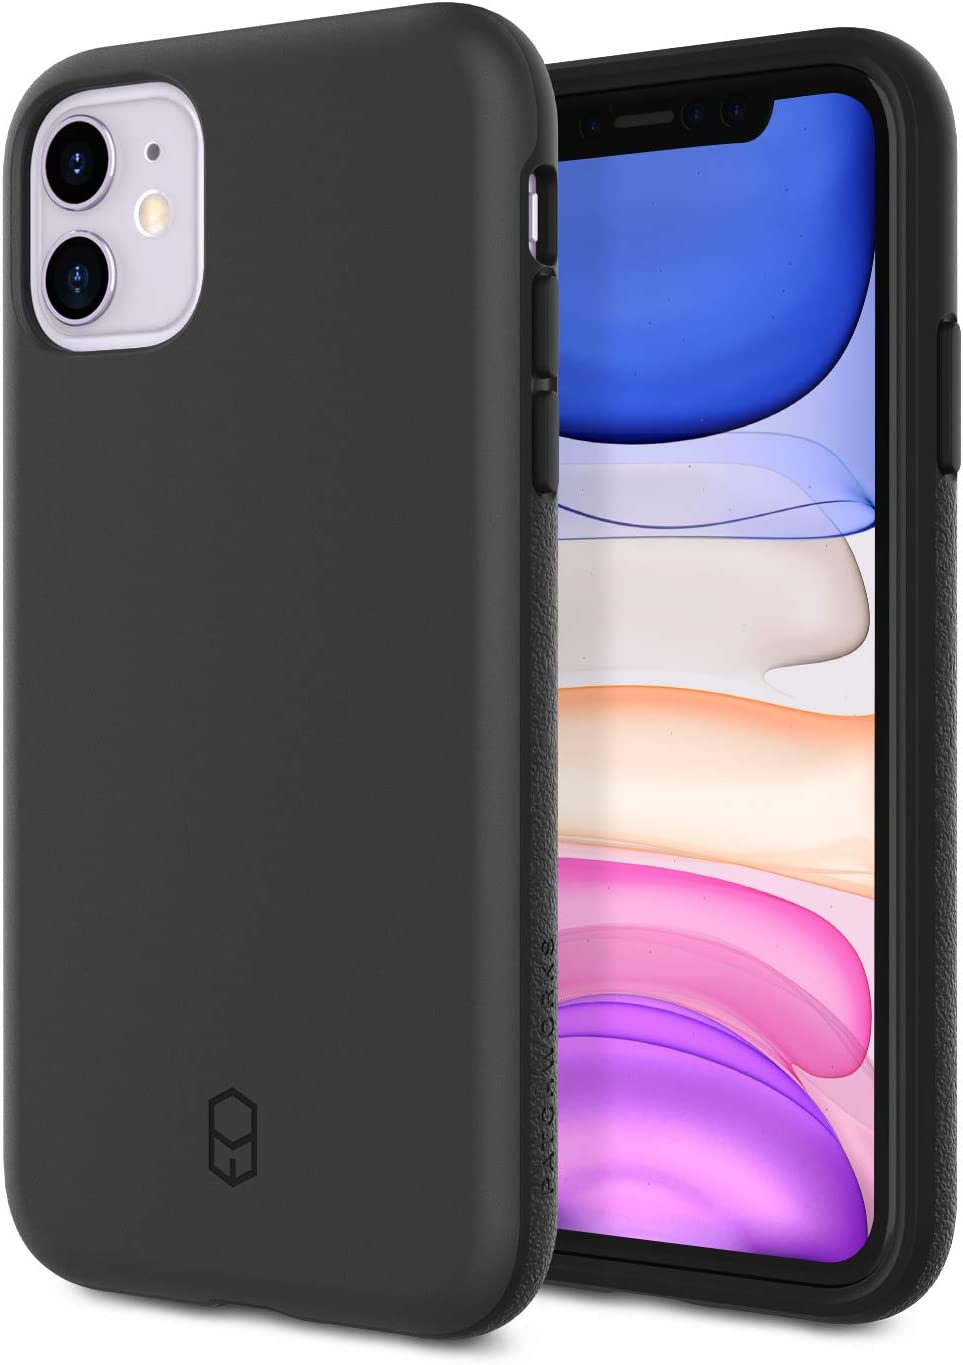 PATCHWORKS ITG Designed for Apple iPhone 11 4G Case 6.1 inch (2019) Ultra Slim Fit Thin Shockproof Hard Back Non Slip Stylish Matte Protective Phone Case Military Grade Drop Test - Black